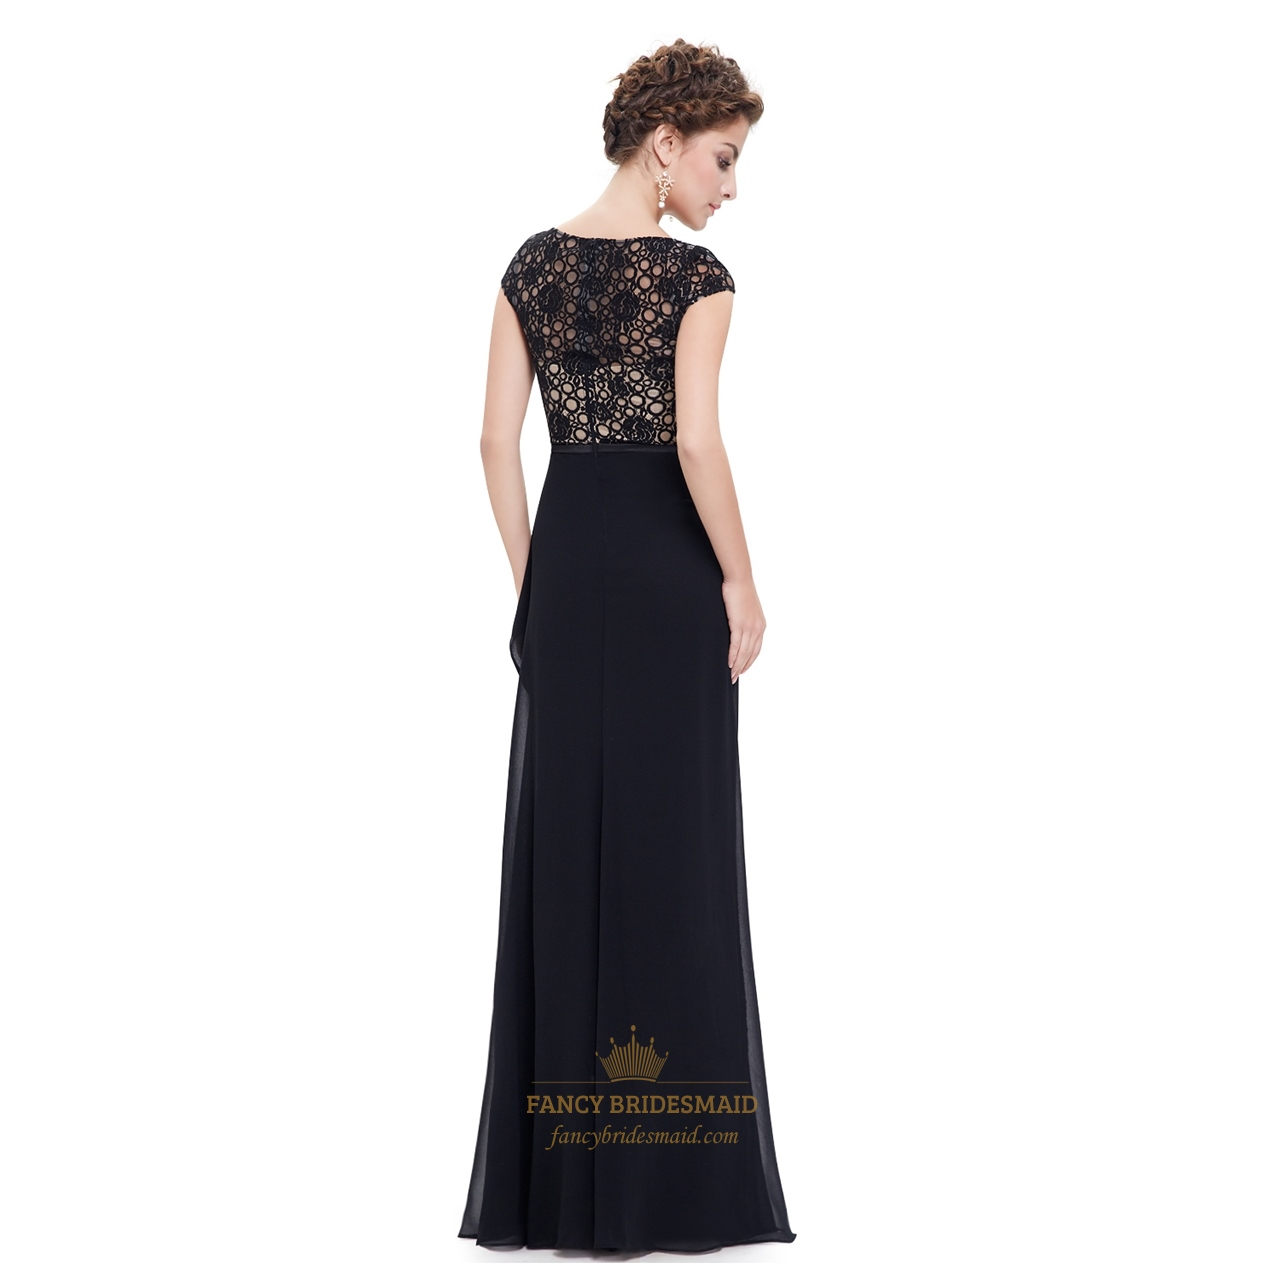 Watch - Lace black bridesmaid dresses with sleeves video